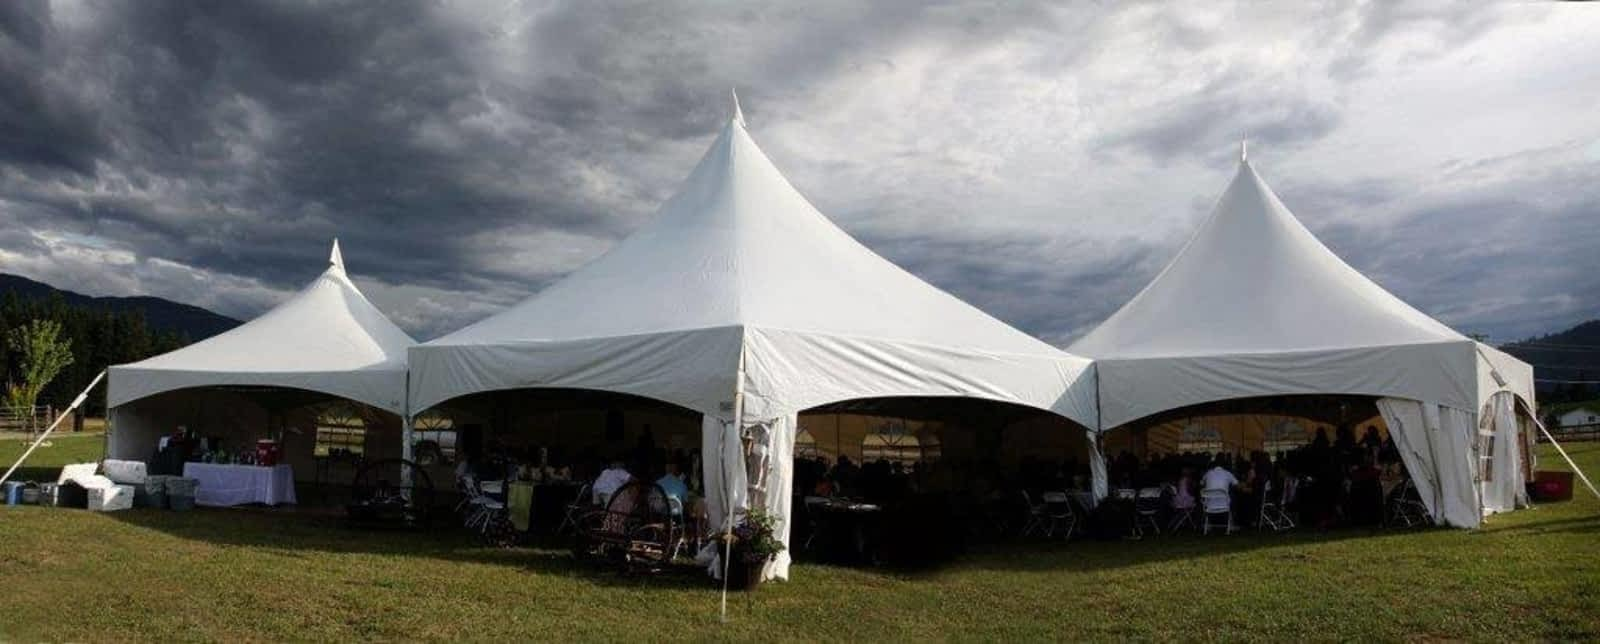 & Avalon Event Rentals - Vernon - Opening Hours - 4701 25 Ave Vernon BC